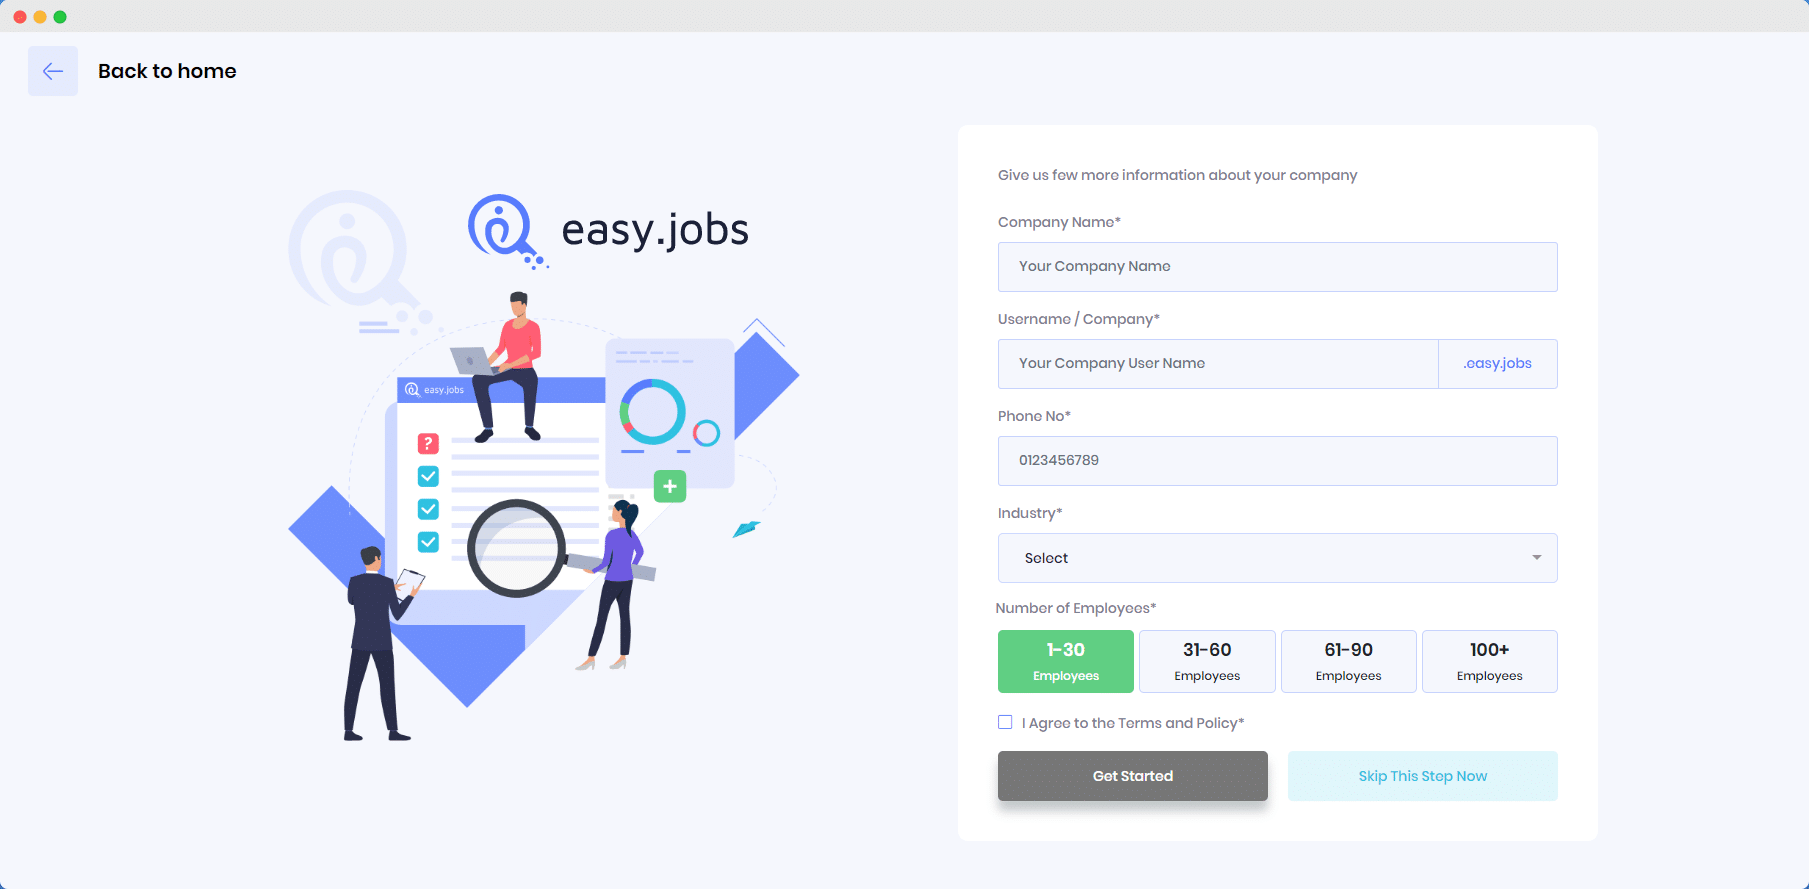 getting started, easy.jobs